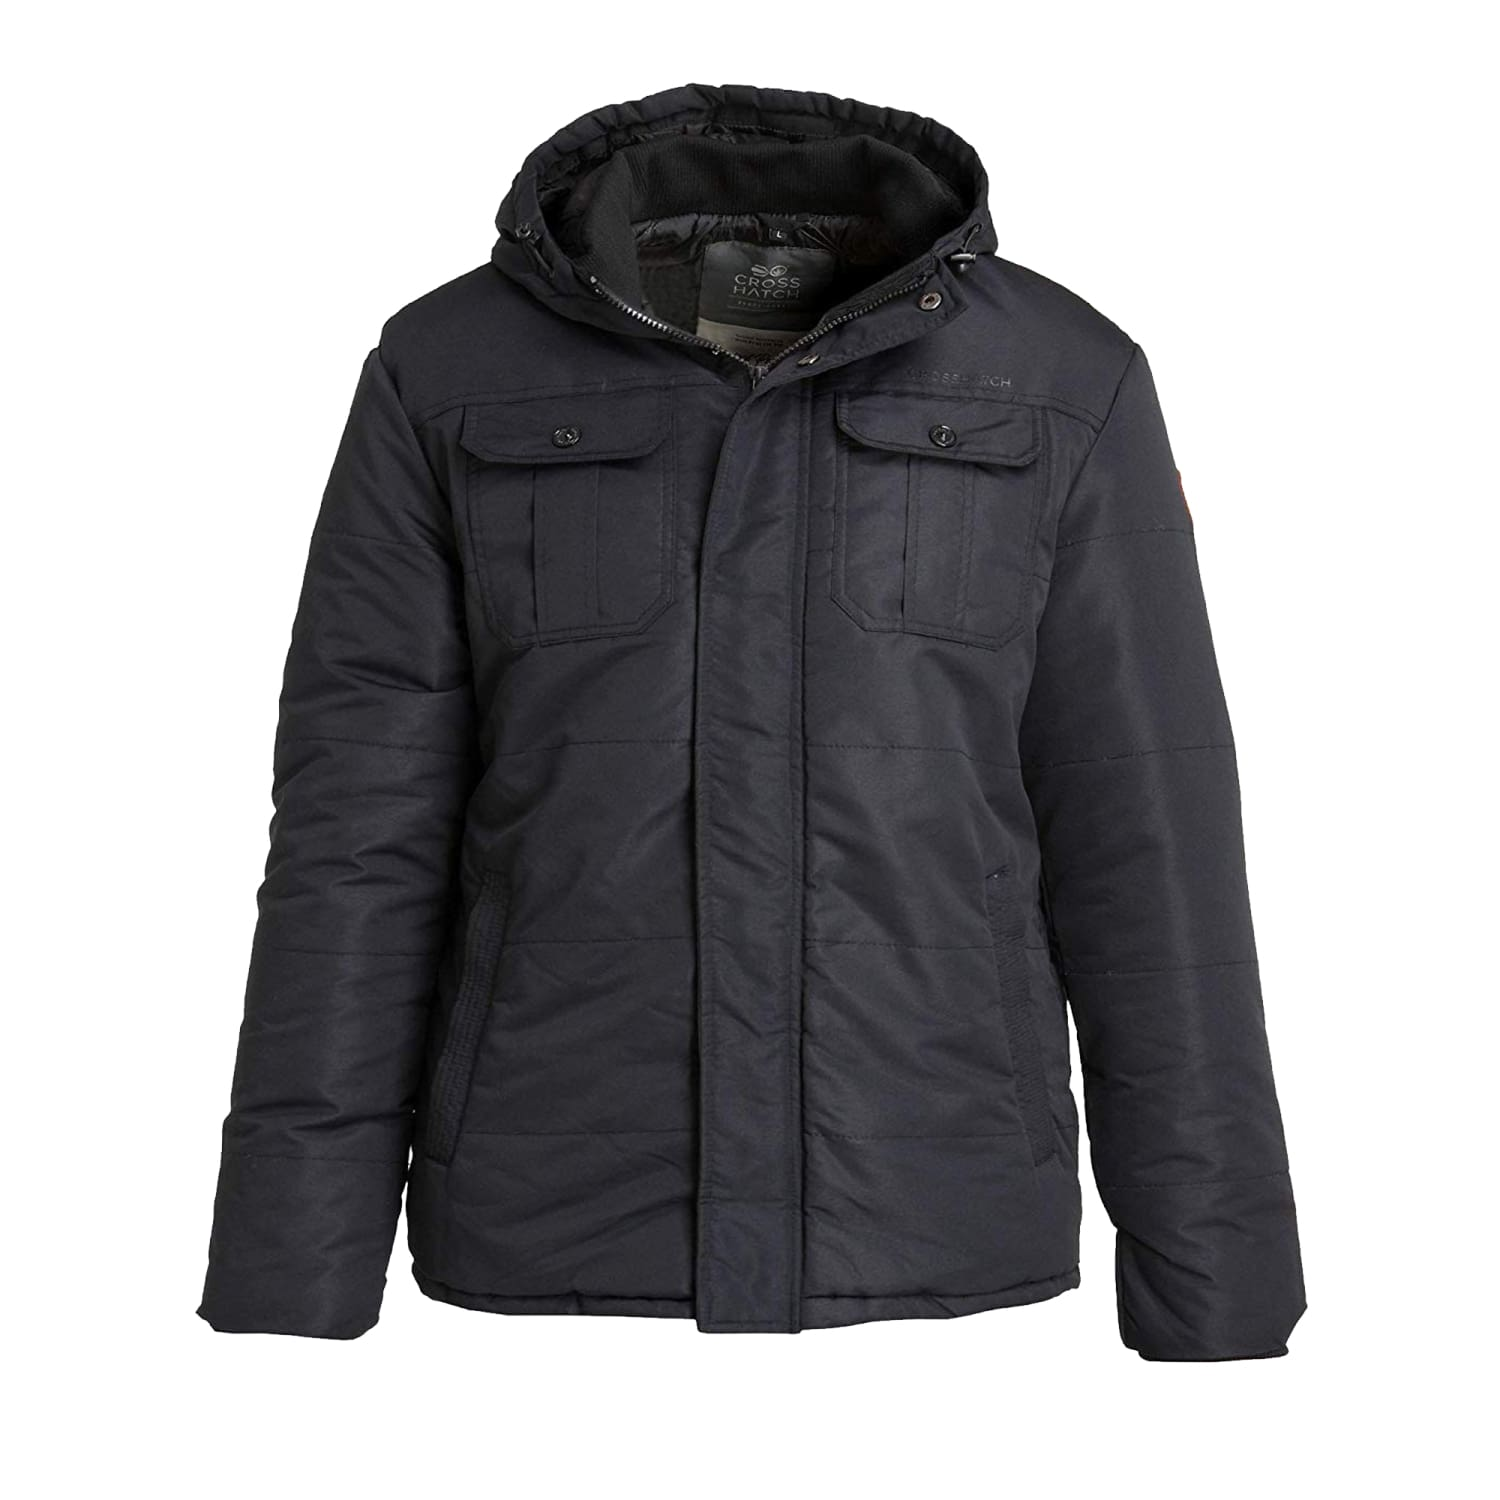 Crosshatch Padded Jacket - Beekham - Black 1